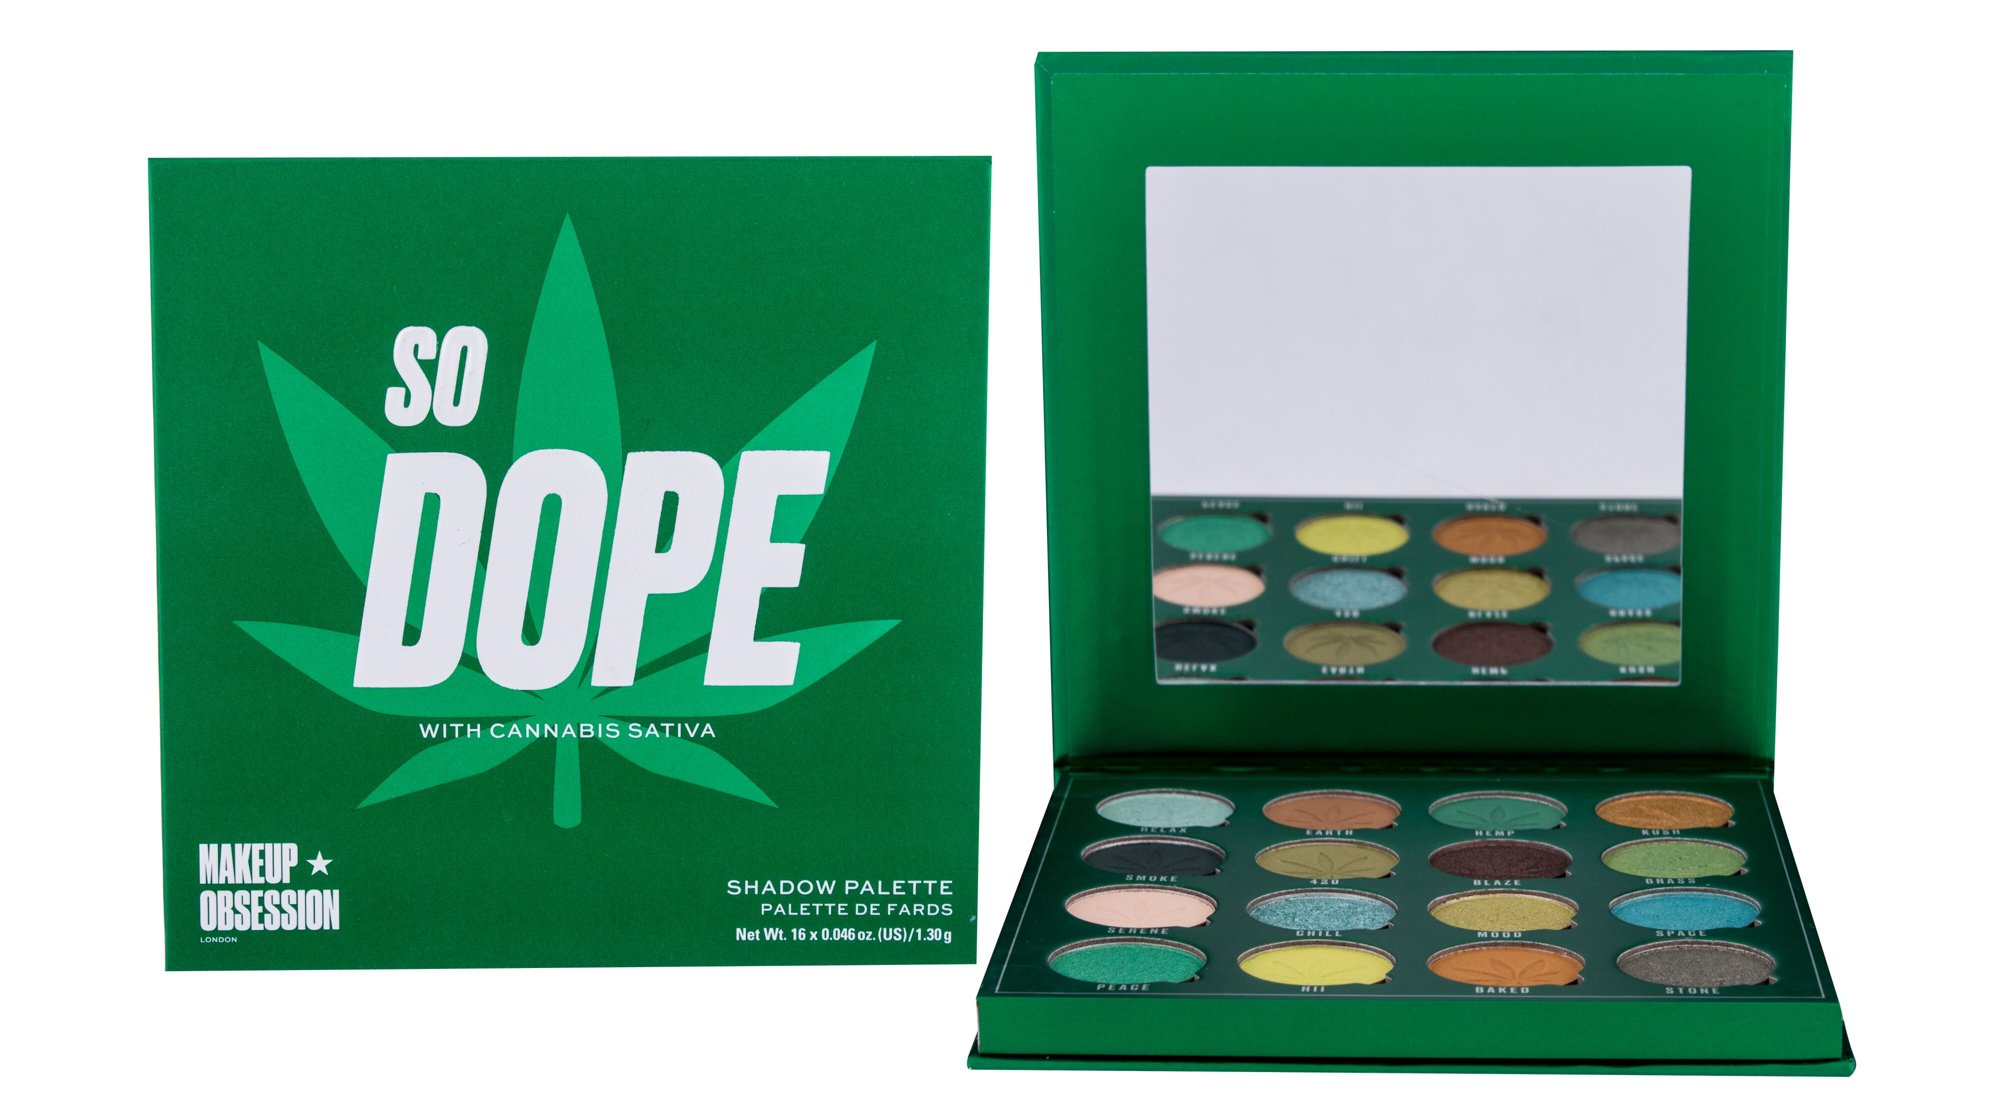 Makeup Obsession So Dope With Cannabis Sativa, Szemhéjpúder 20,8g